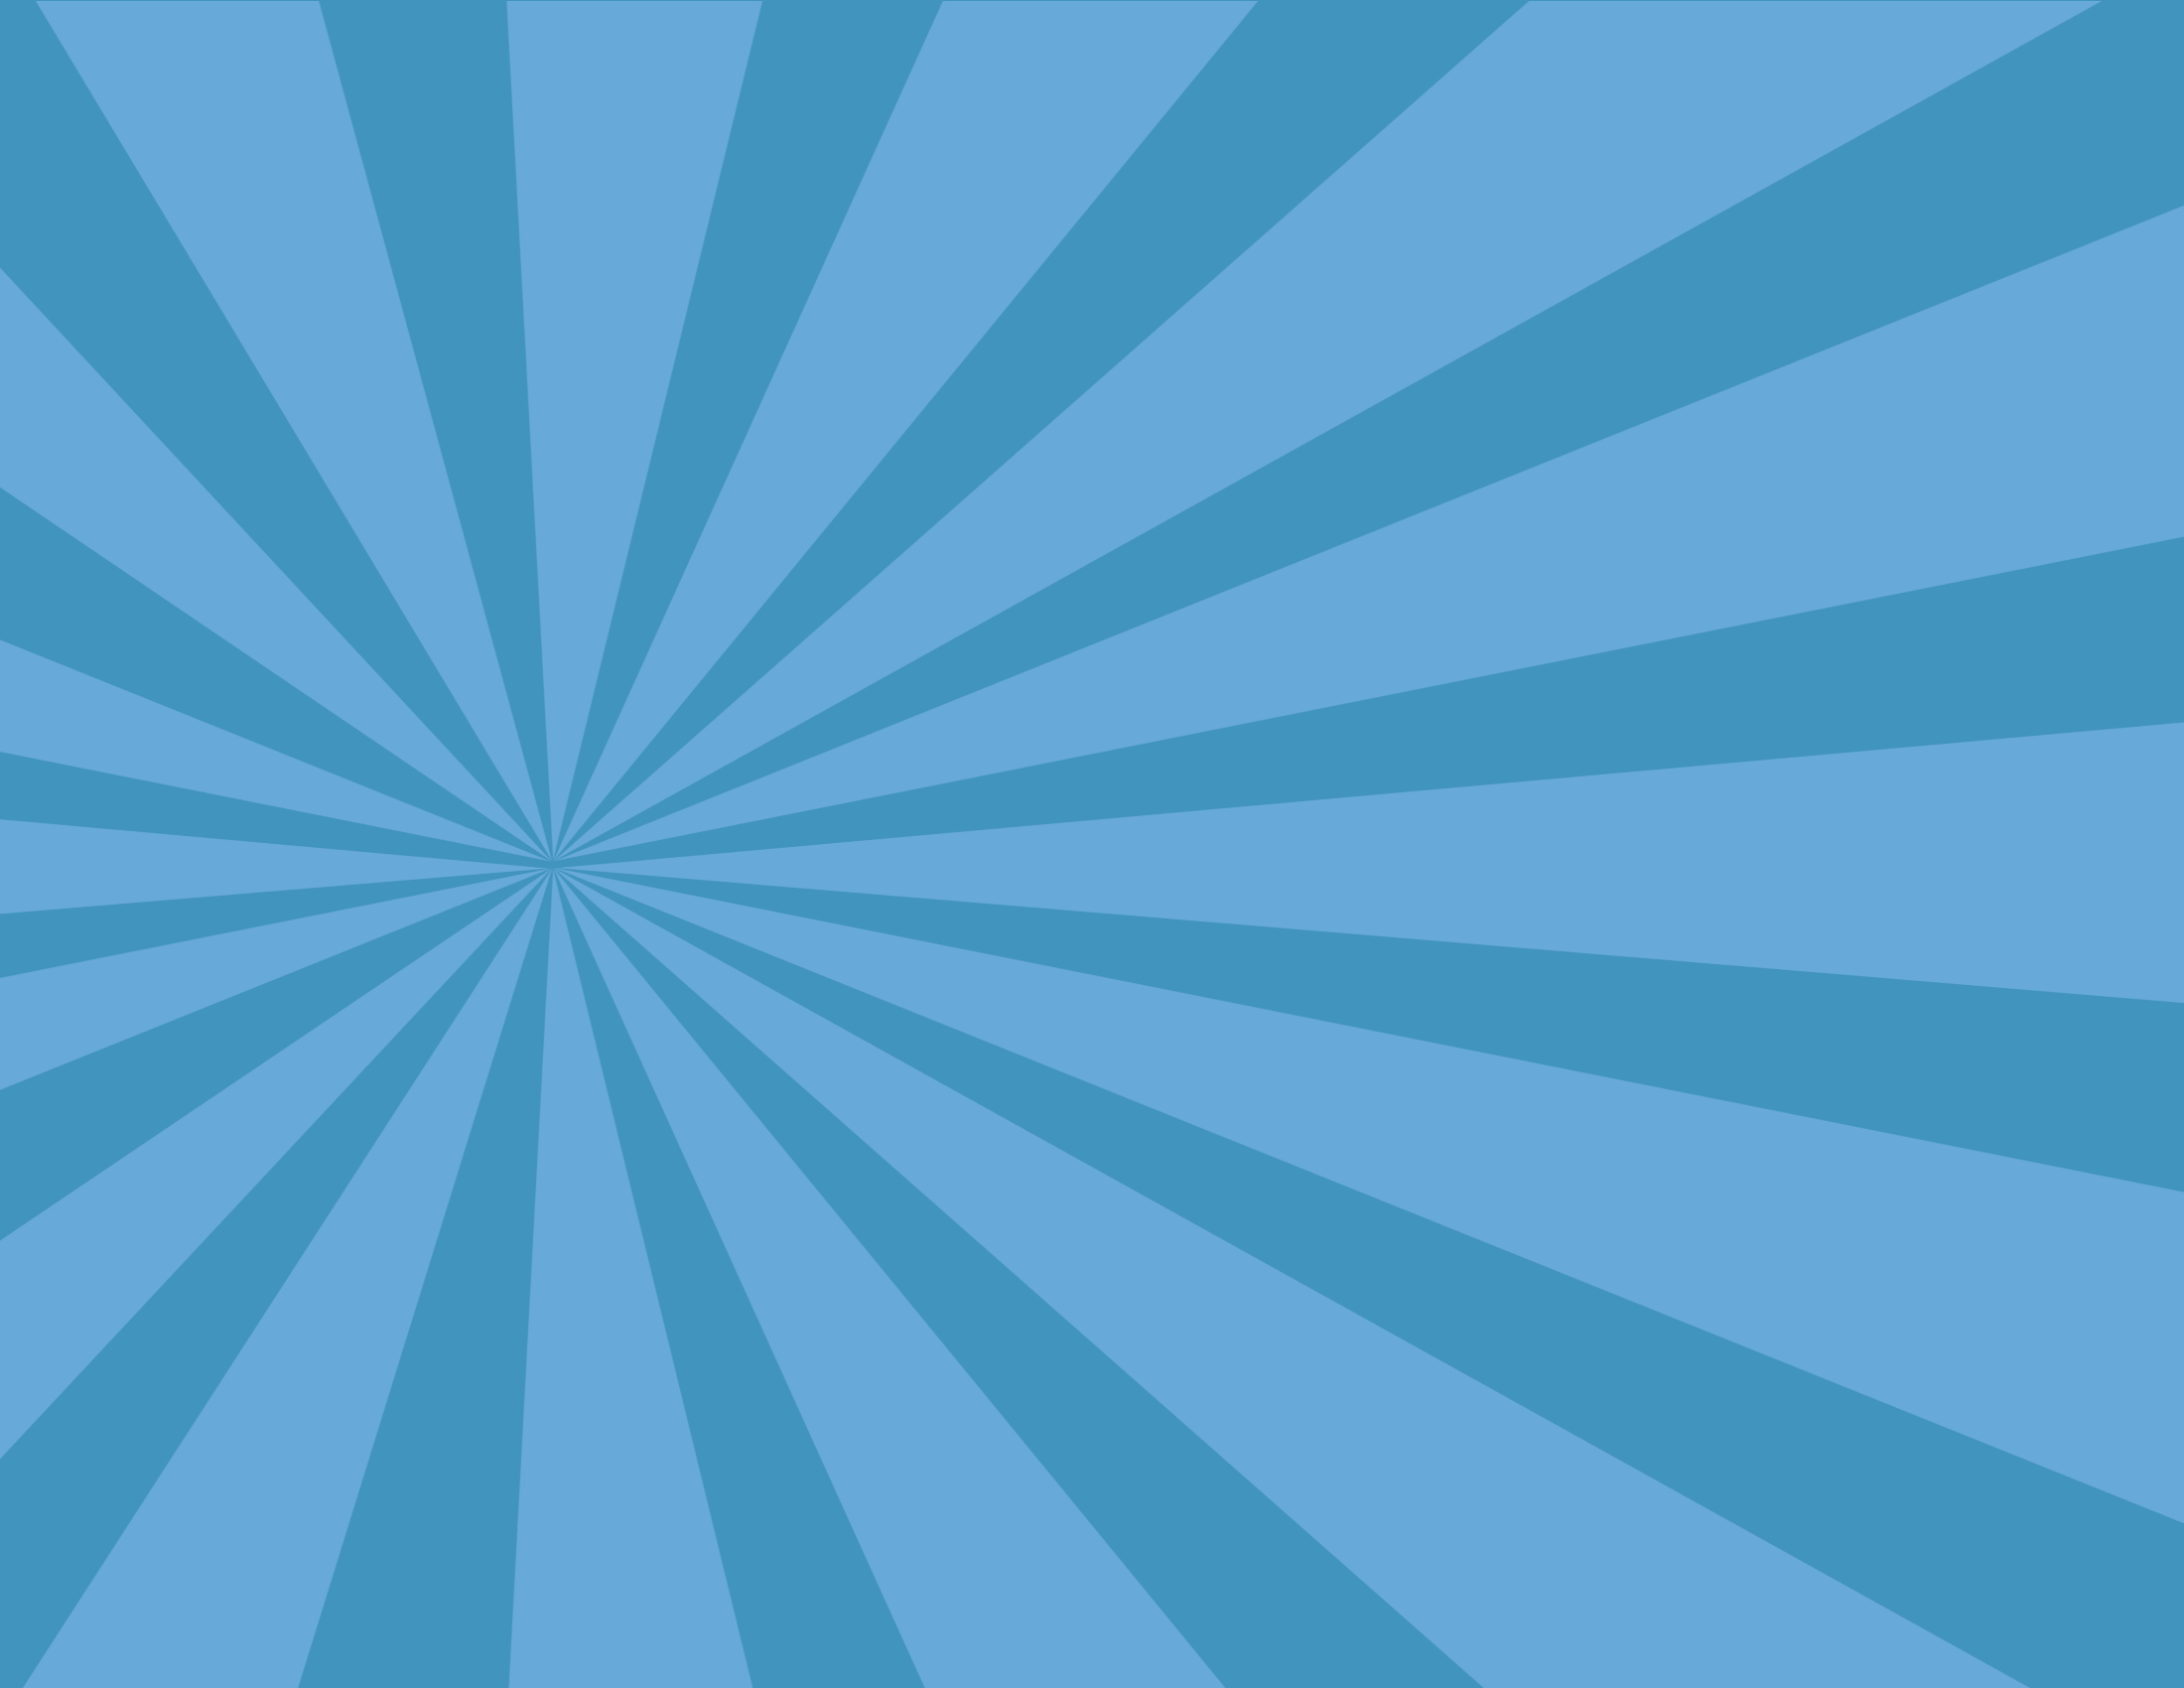 Free Sunburst Background In Any Color/s | Instant Download - Free Printable Backgrounds